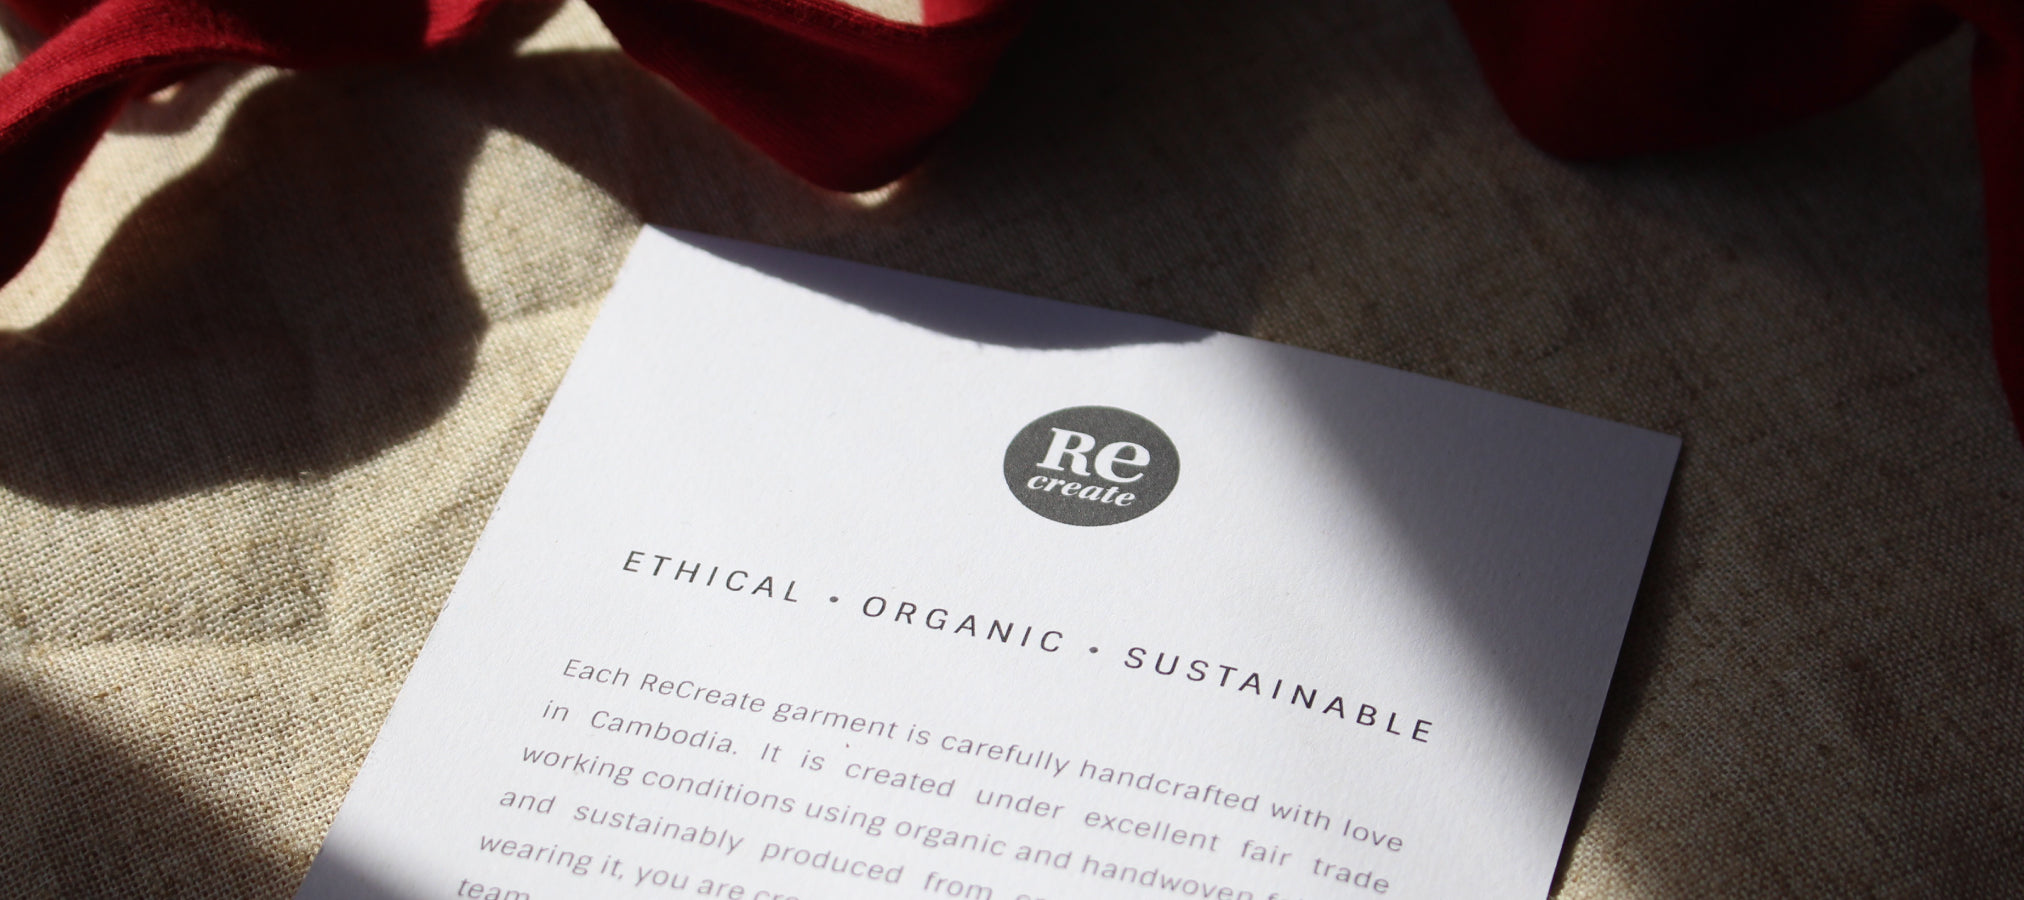 Ethical, Organic, Sustainable